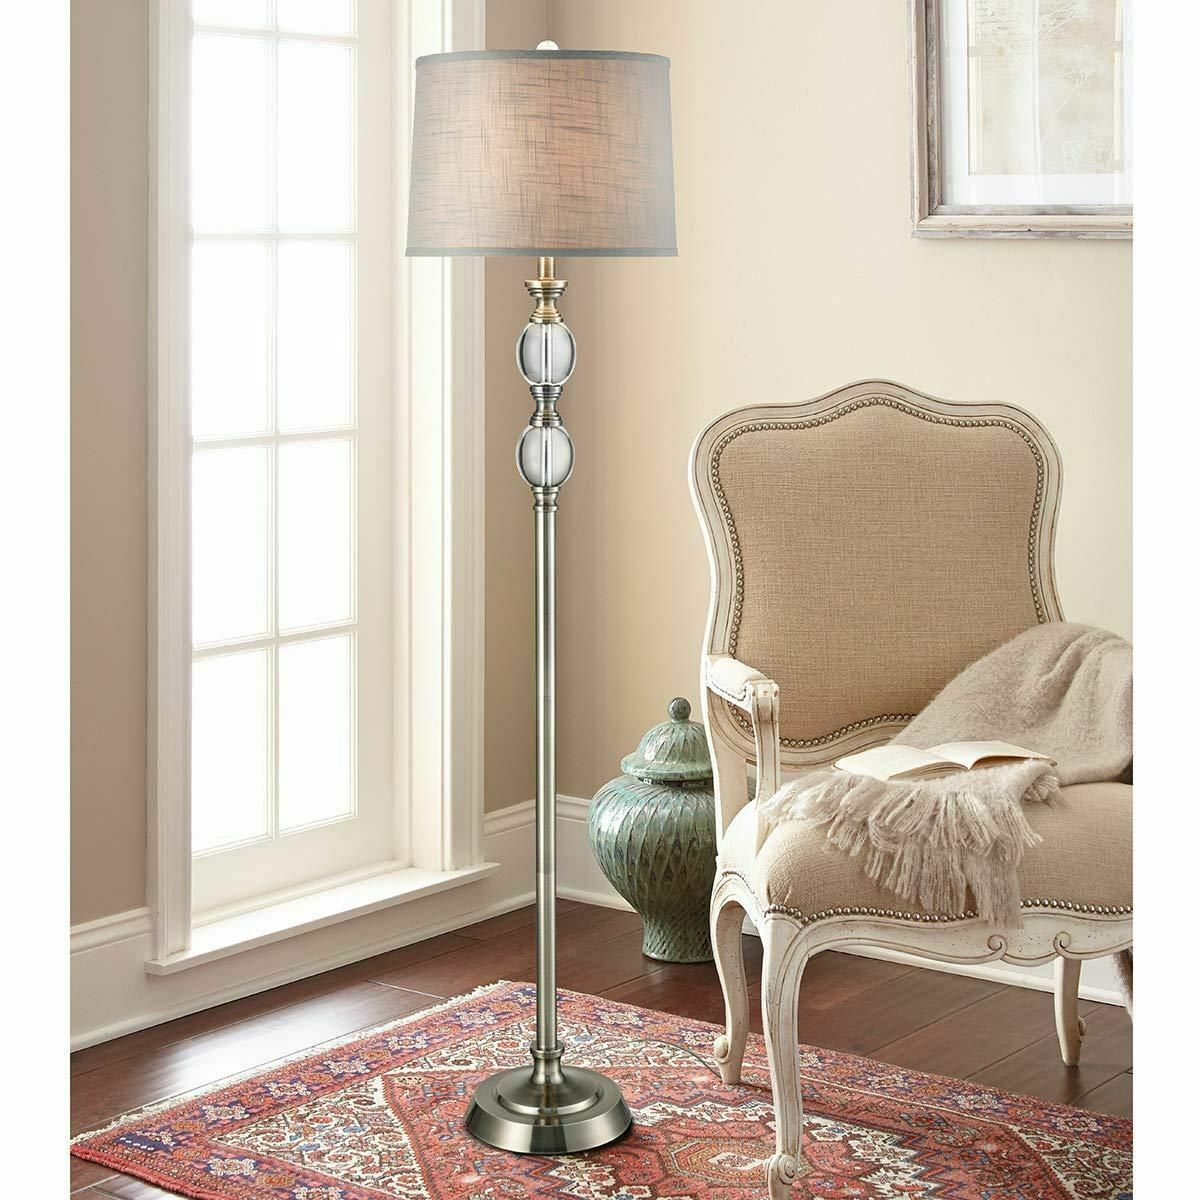 Details About Bouche Crystal Floor Lamp By Bridgeport Designs